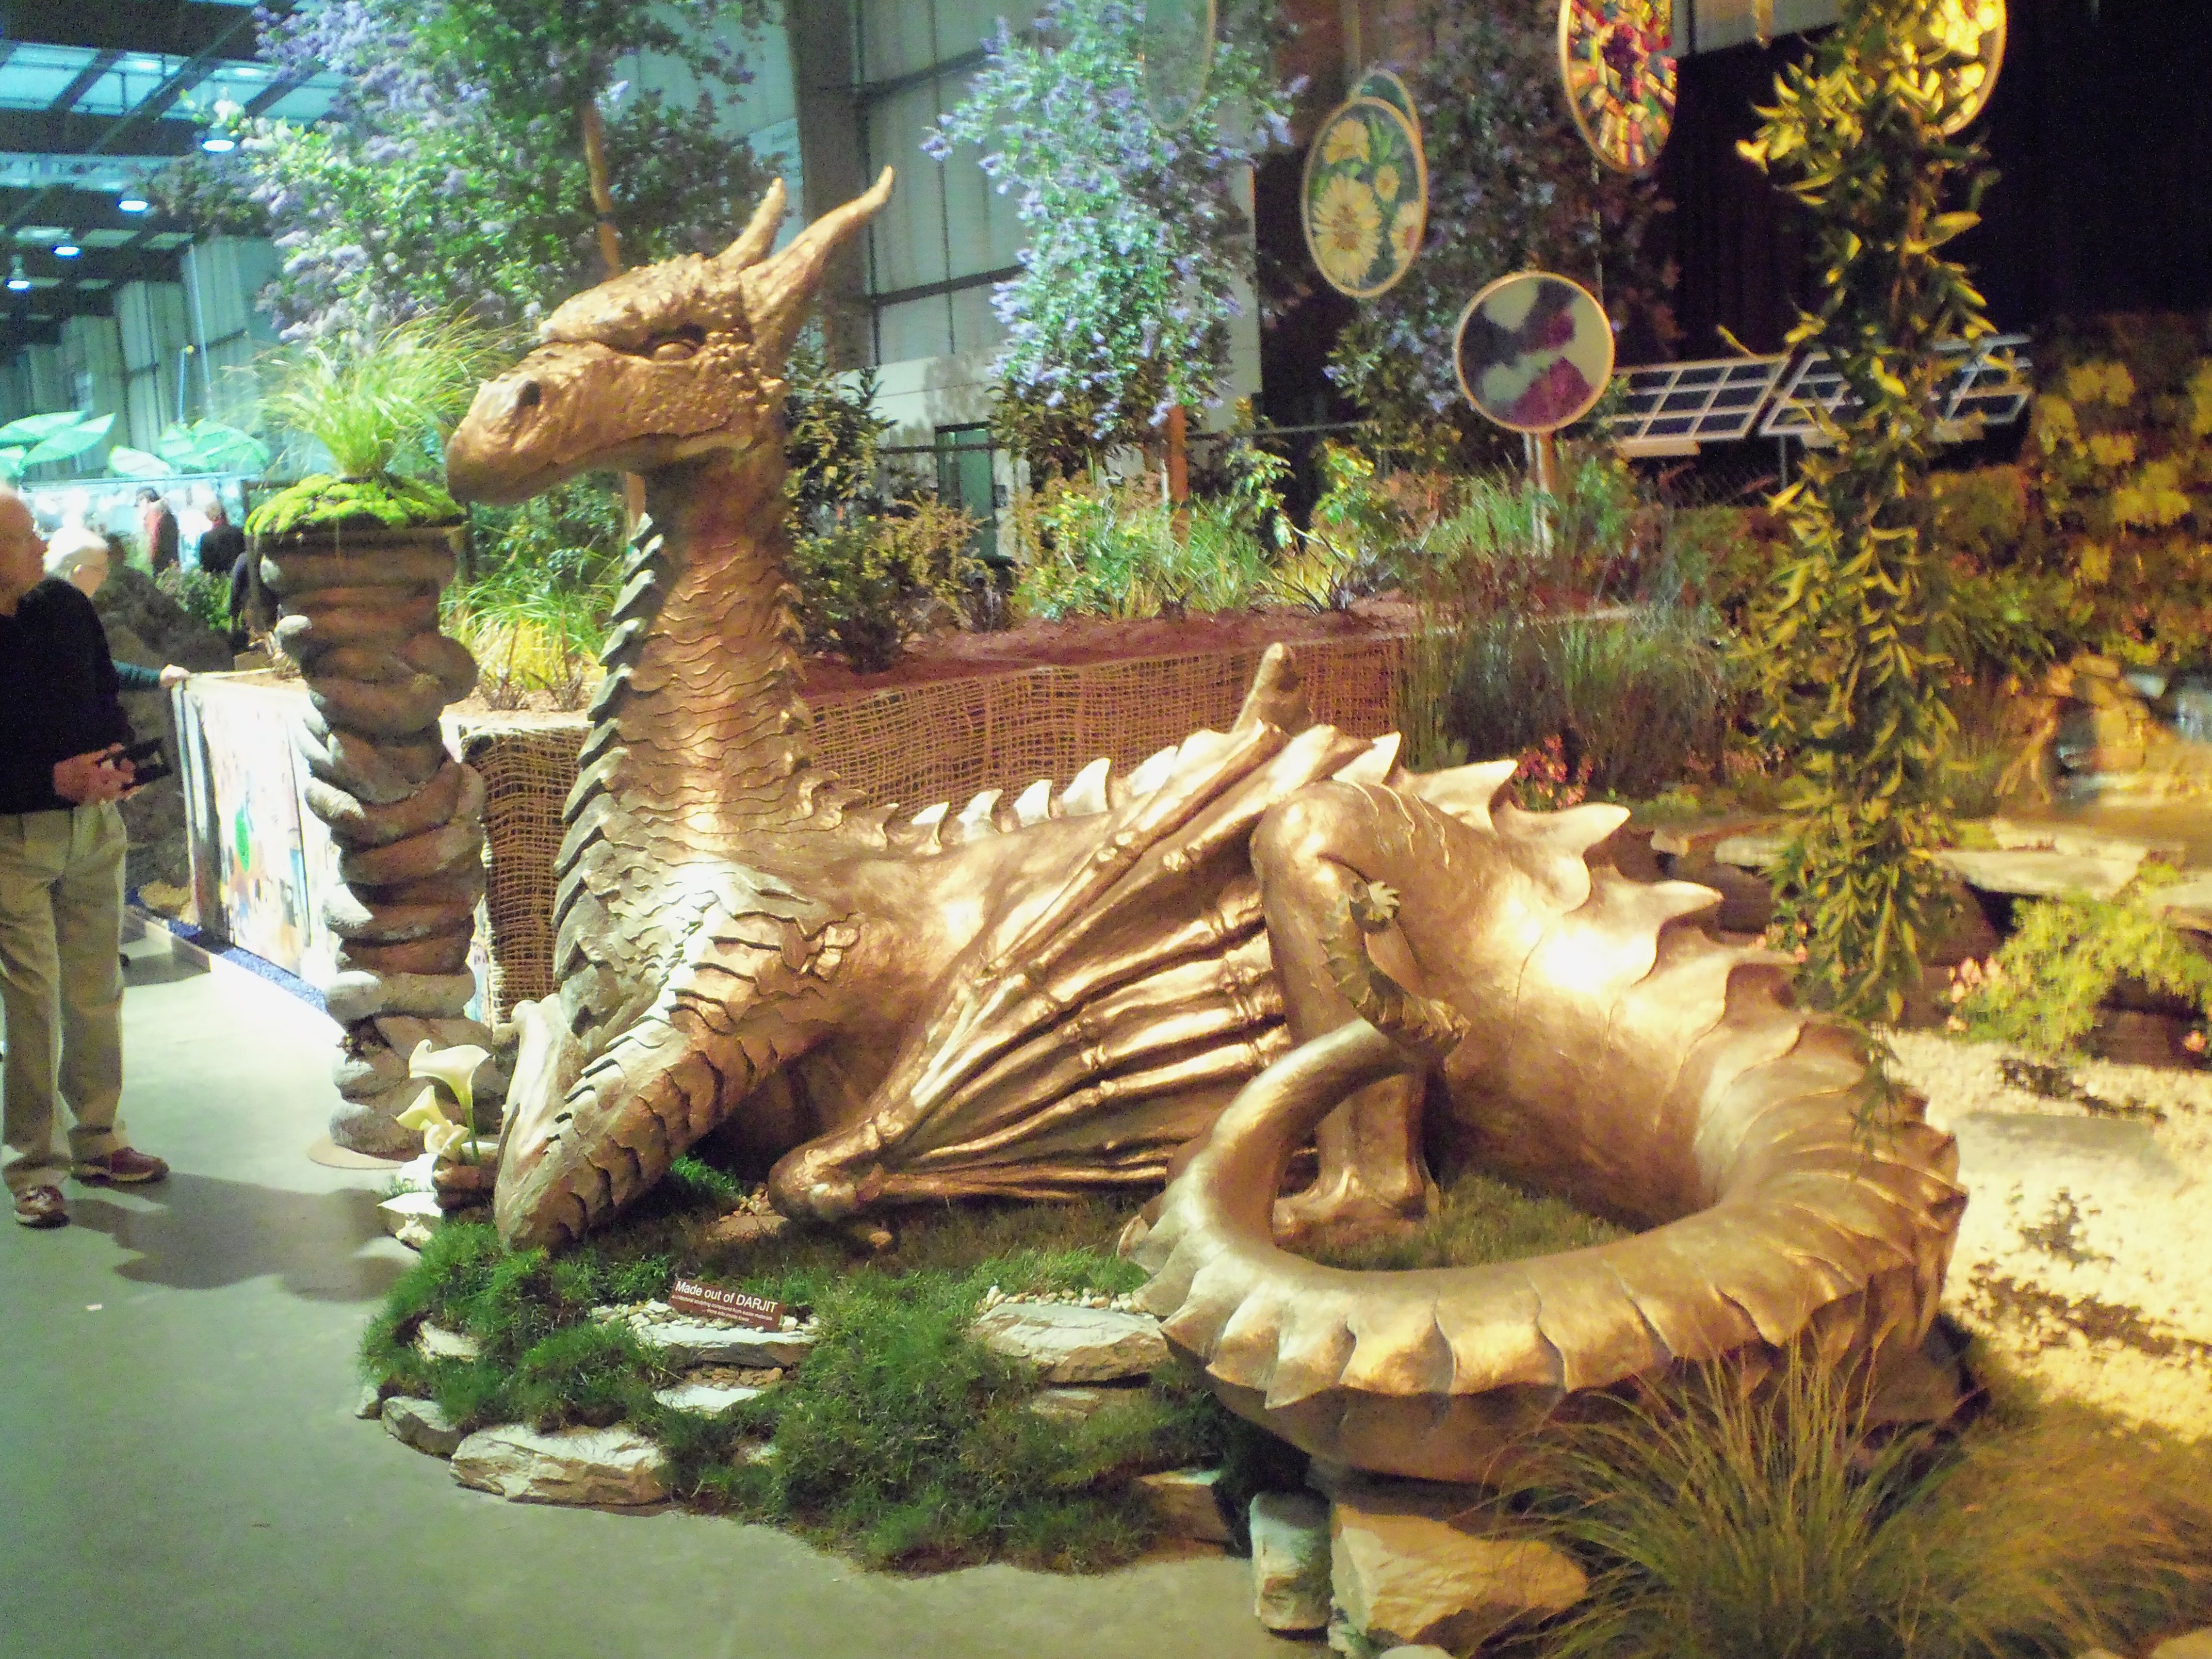 An example of amazing artwork and garden design at the 2012 show ...